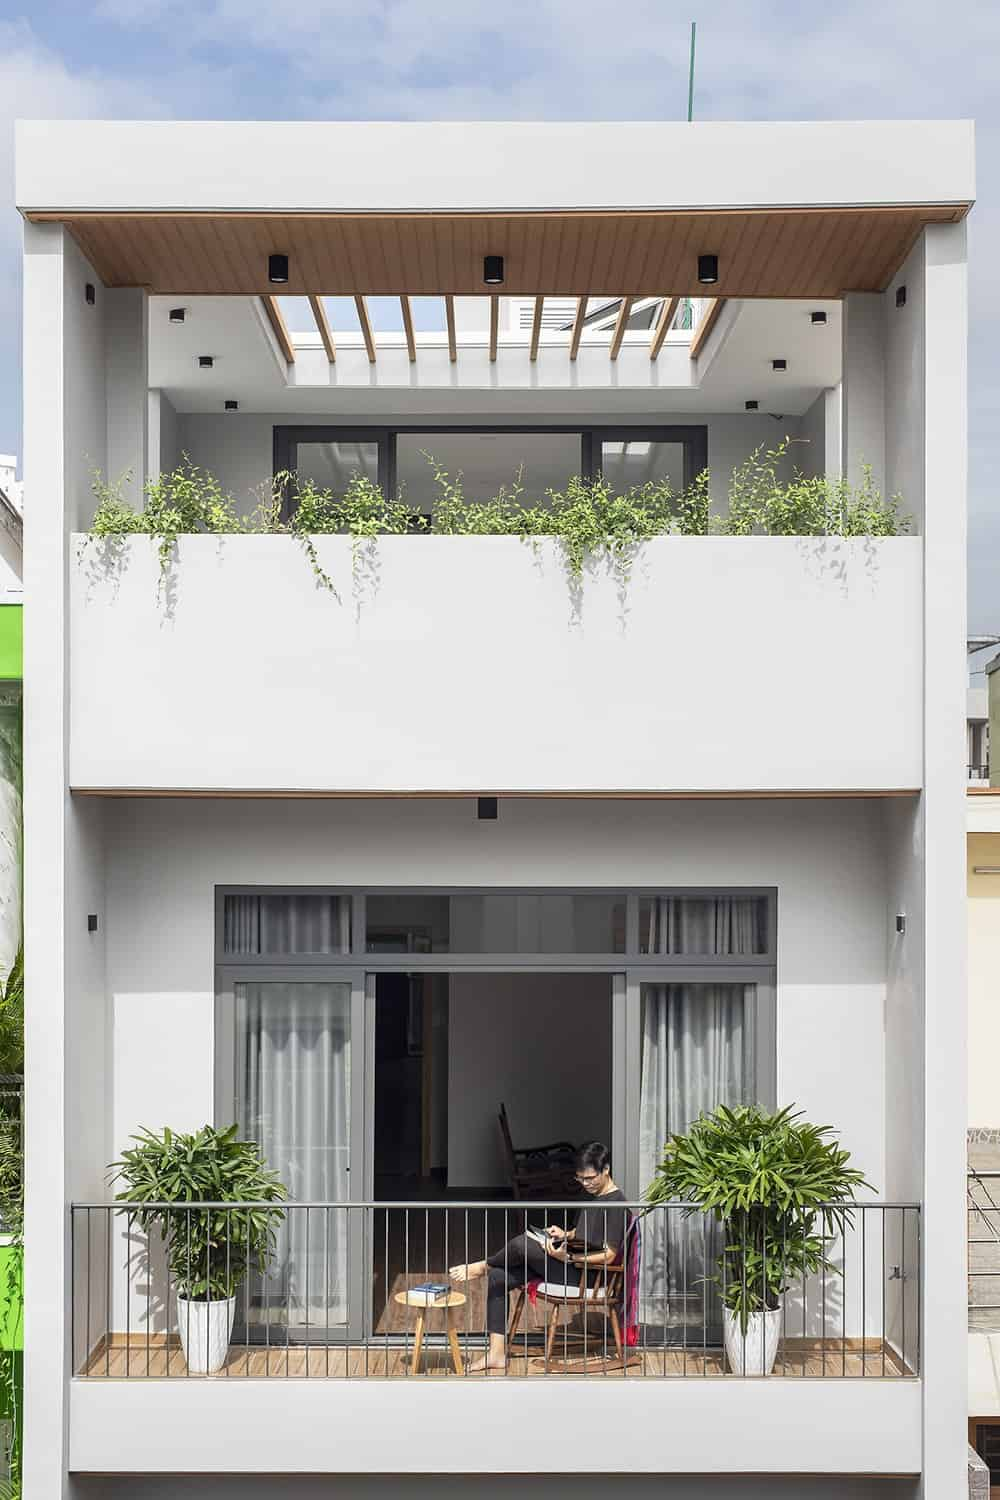 This is a close look at the third floor and rooftop balconies adorned with planters and potted plants that bring color to the concrete exterior walls.